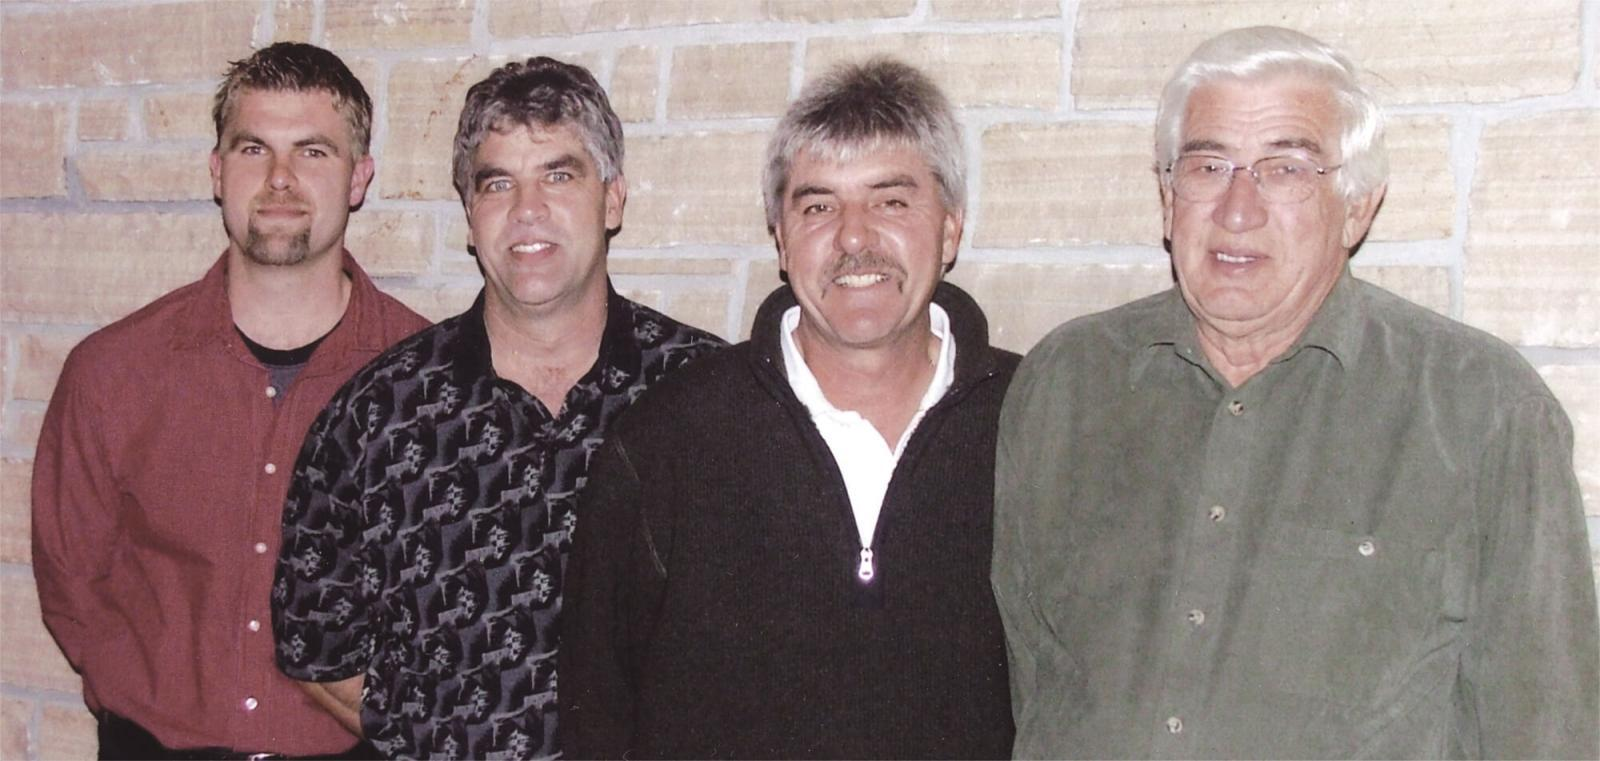 Mark, Rick, Case and Neil Vanderkruk pictured here at the company's 100th anniversary celebration in 2006.